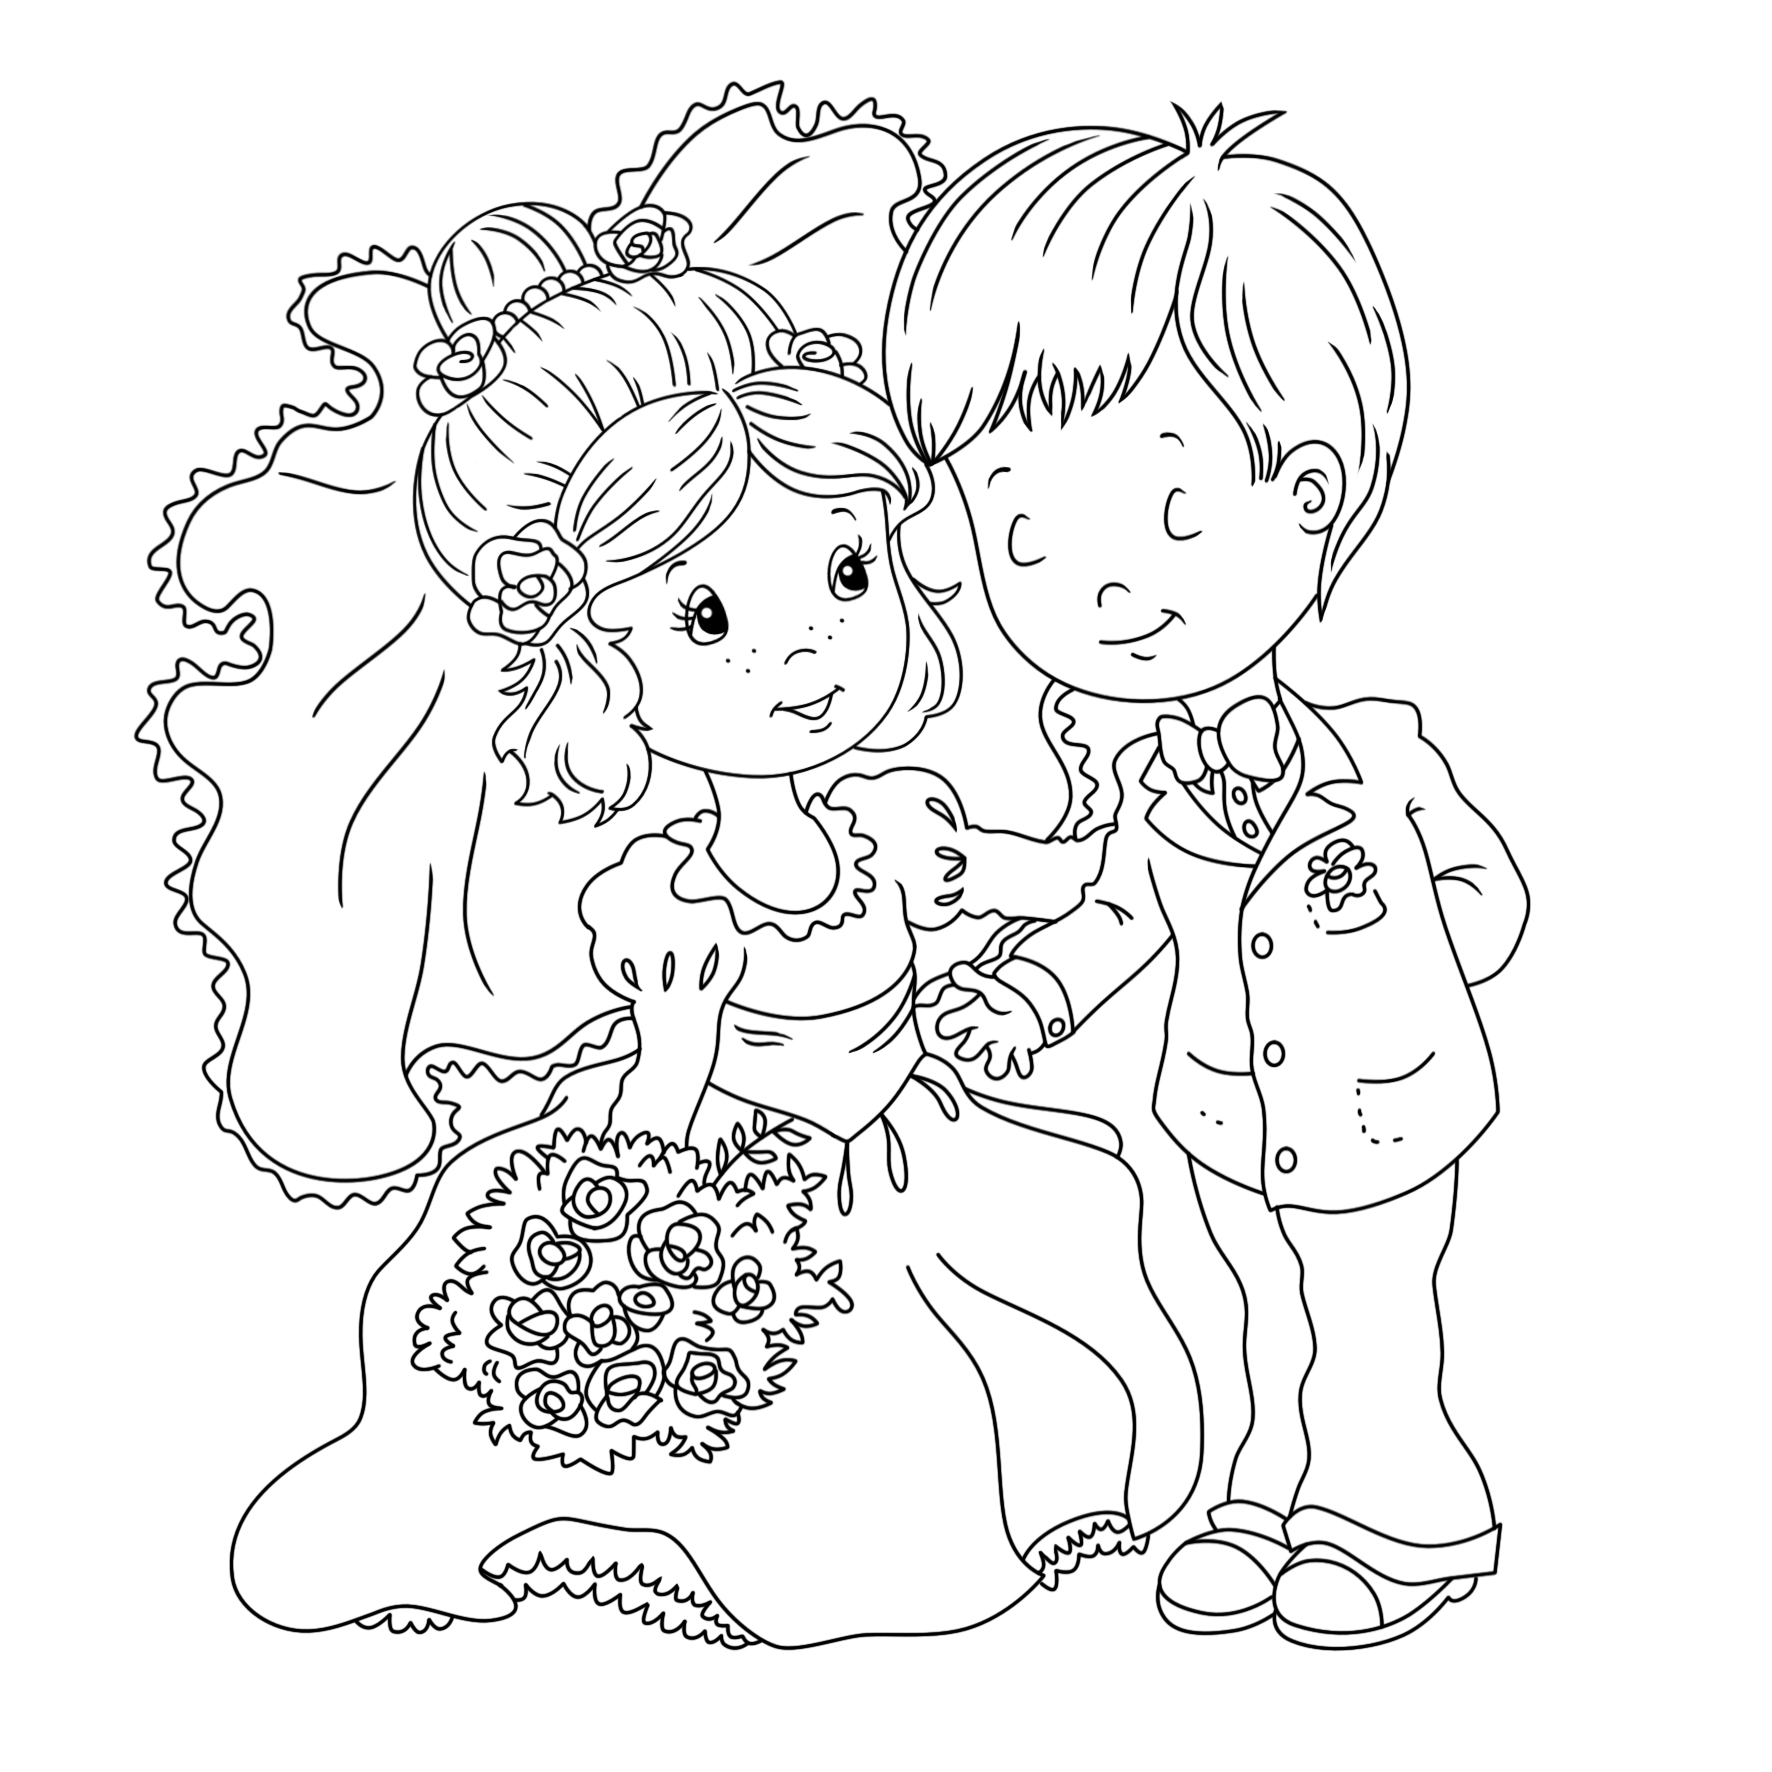 wedding coloring pages wedding coloring pages best coloring pages for kids coloring pages wedding